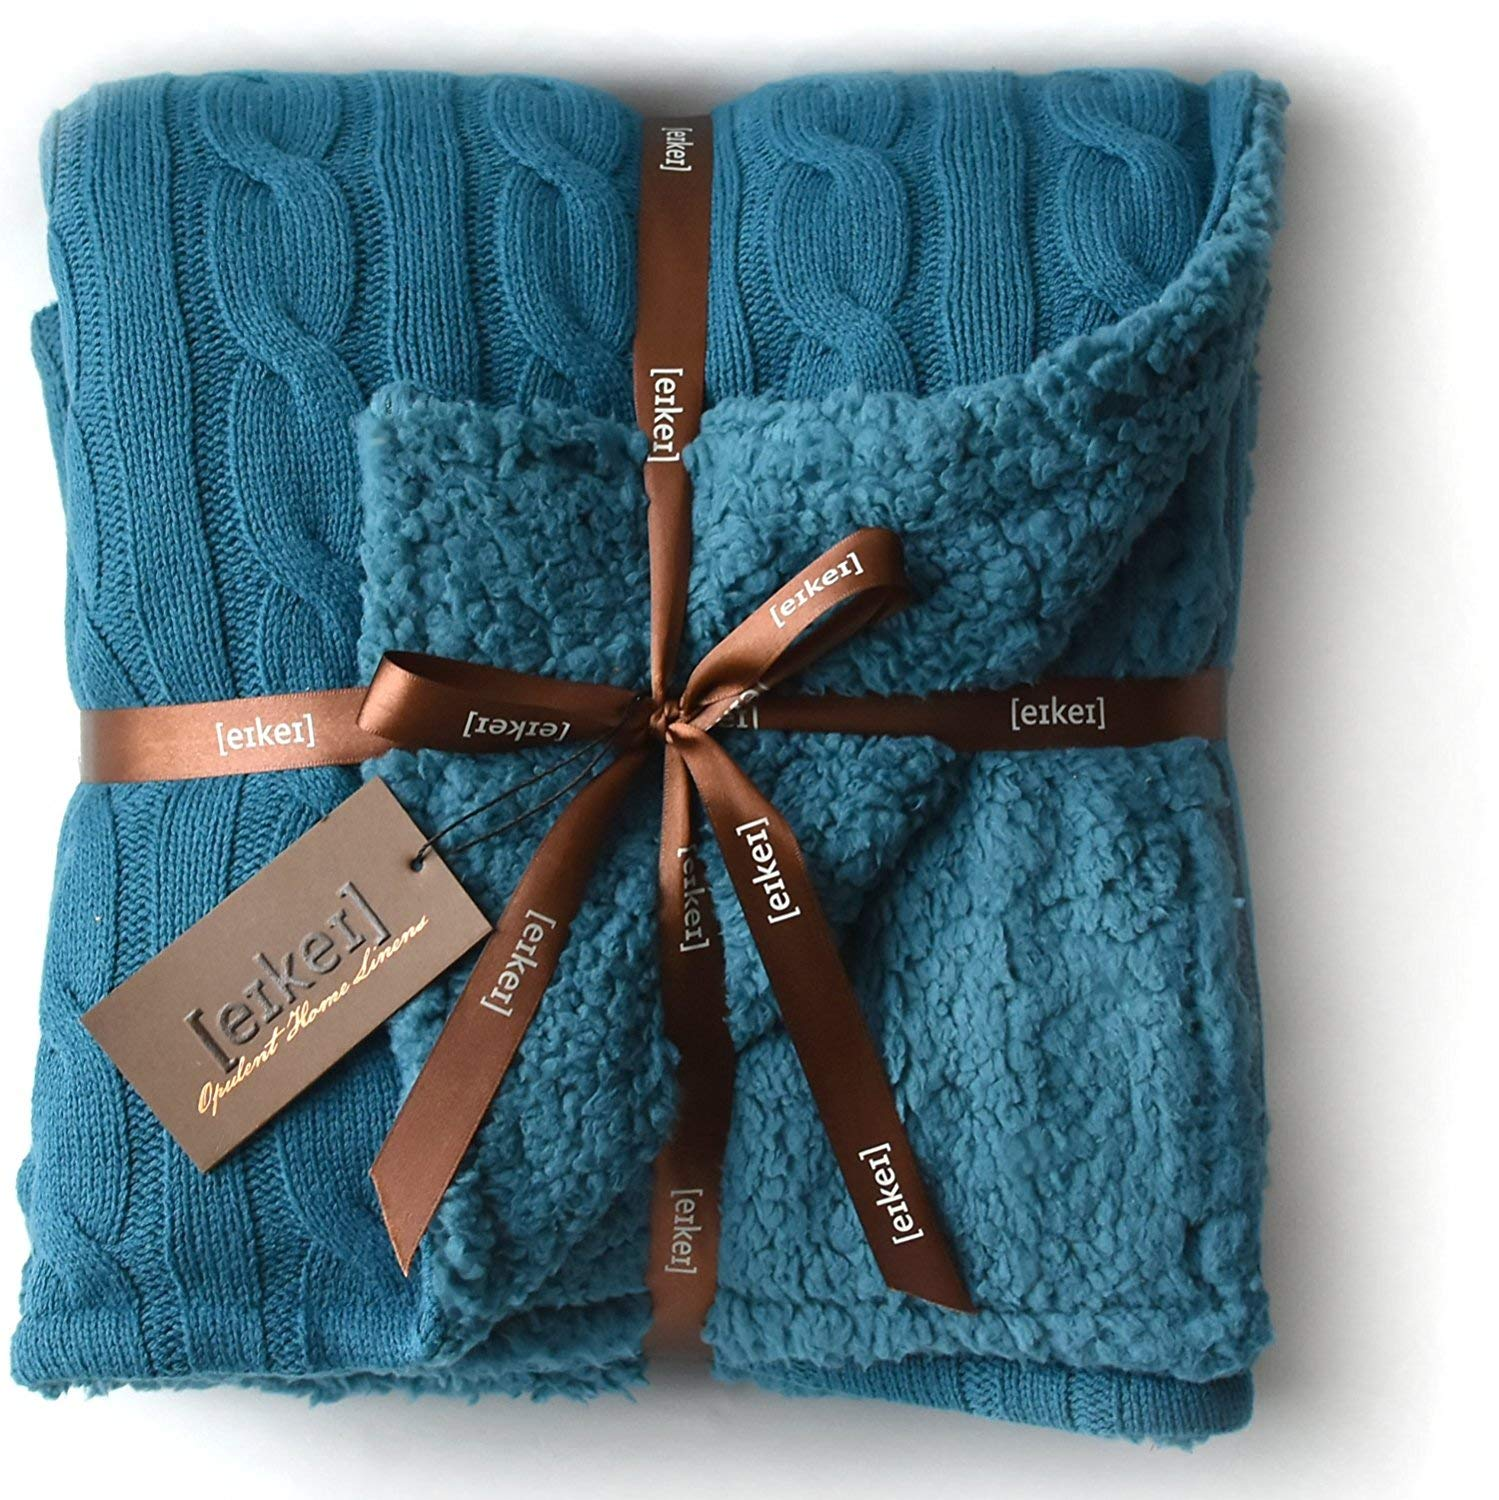 Cable Knit Sherpa Oversized Throw Reversible Blanket Faux Sheepskin Lined Cozy Cotton Blend Sweater Knitted Afghan in Grey White or Turquoise Blue (X-Large Teal)